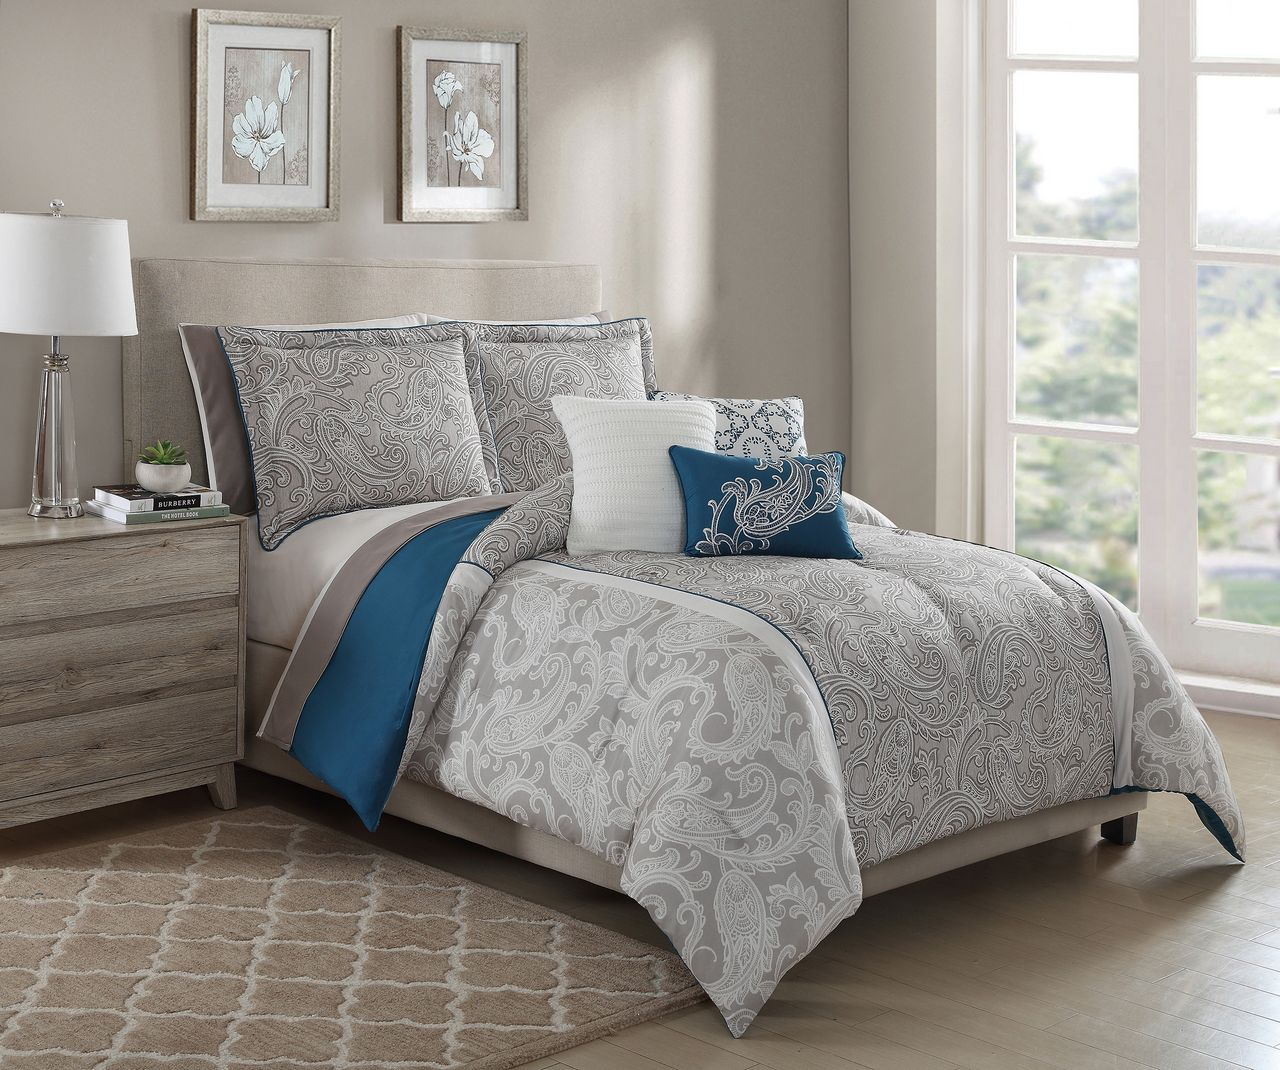 room the bouquet comforter lorenne bianca products img ivory lovely